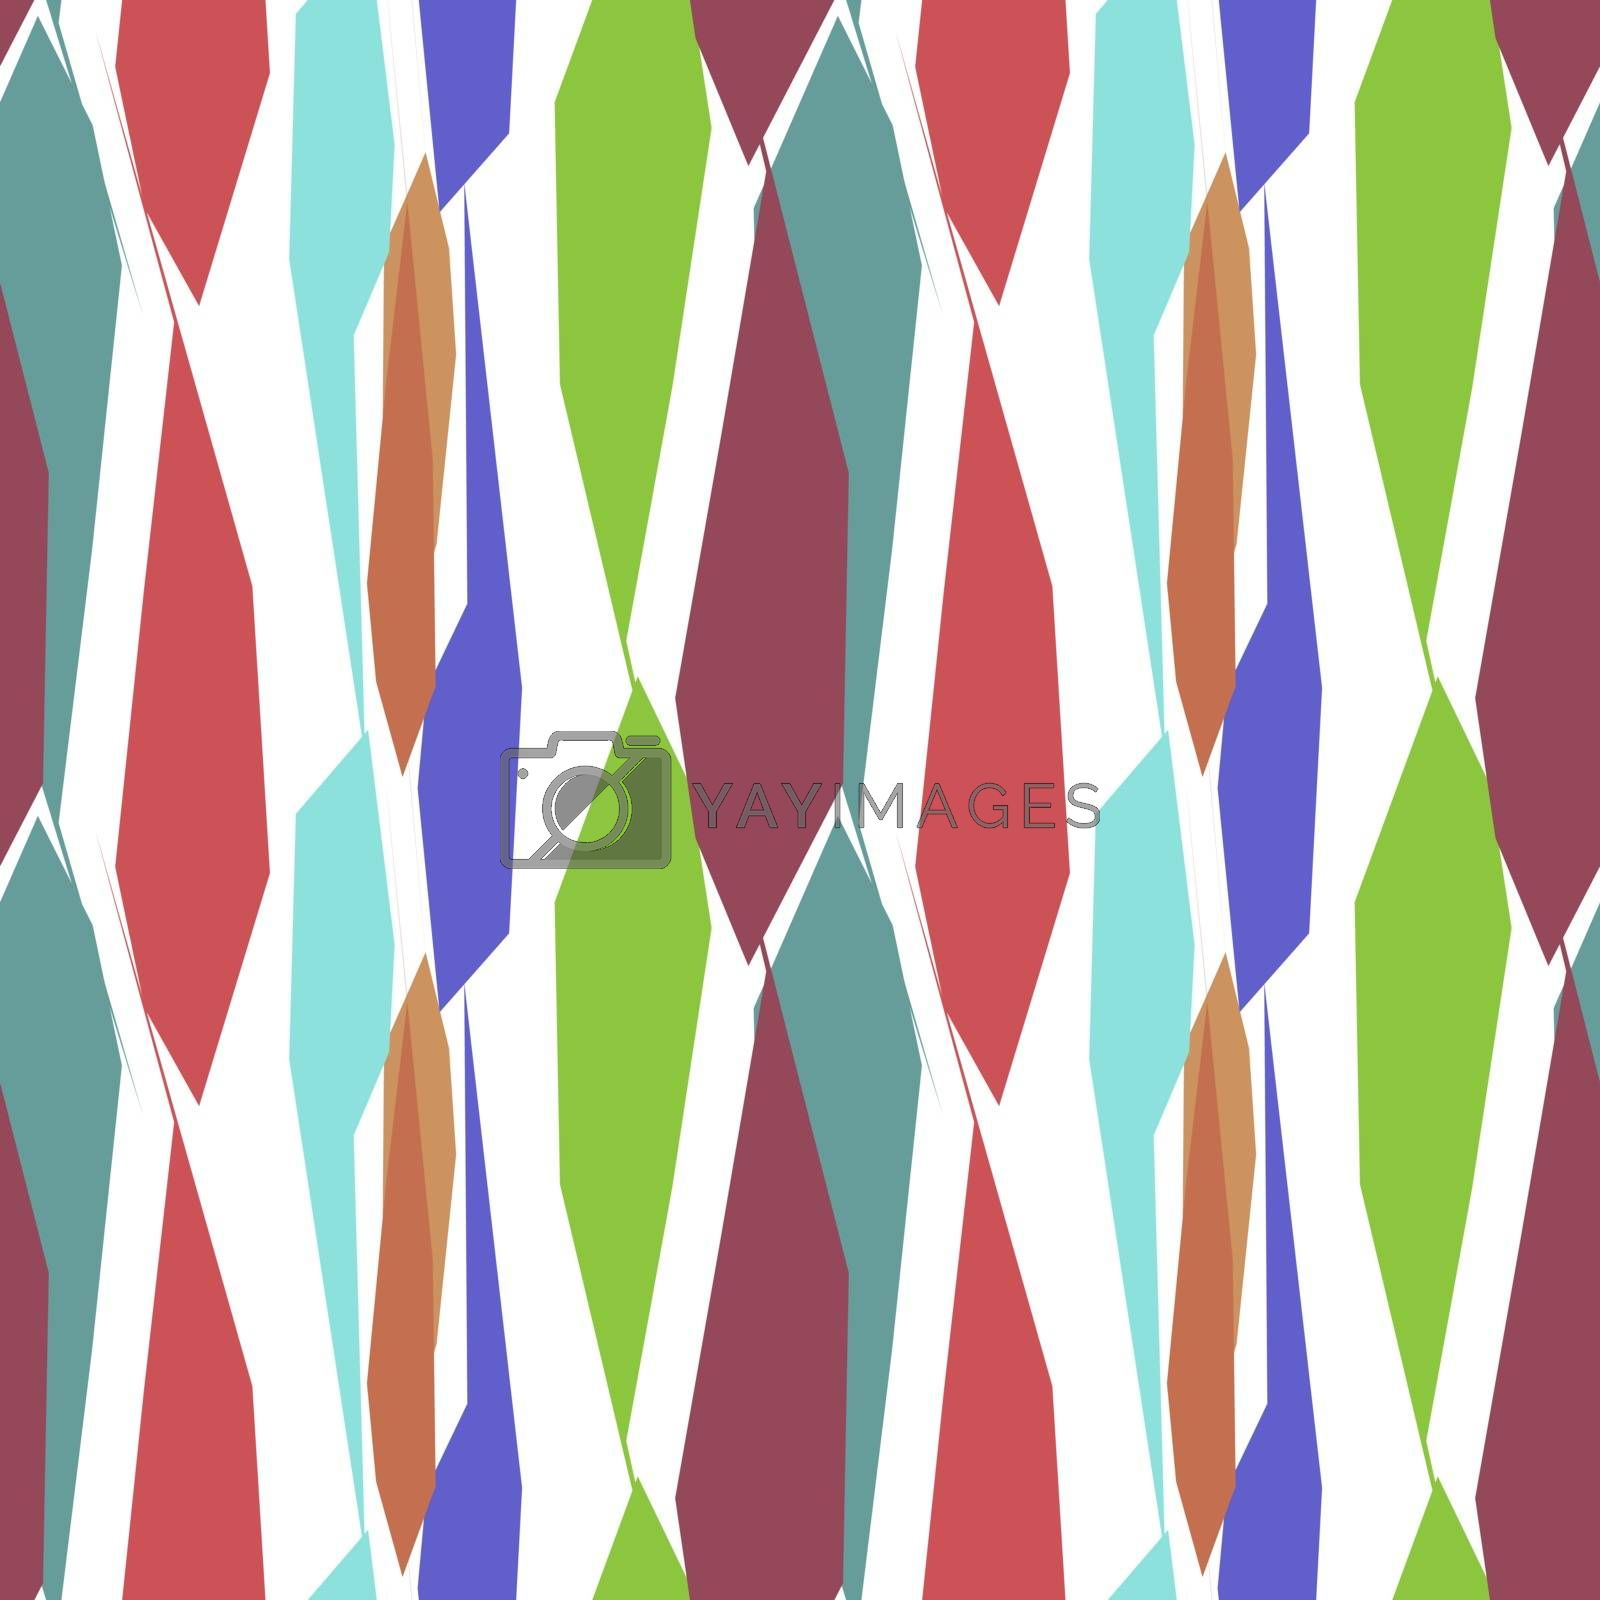 simple abstract minimal bright pattern with different random colorful shapes